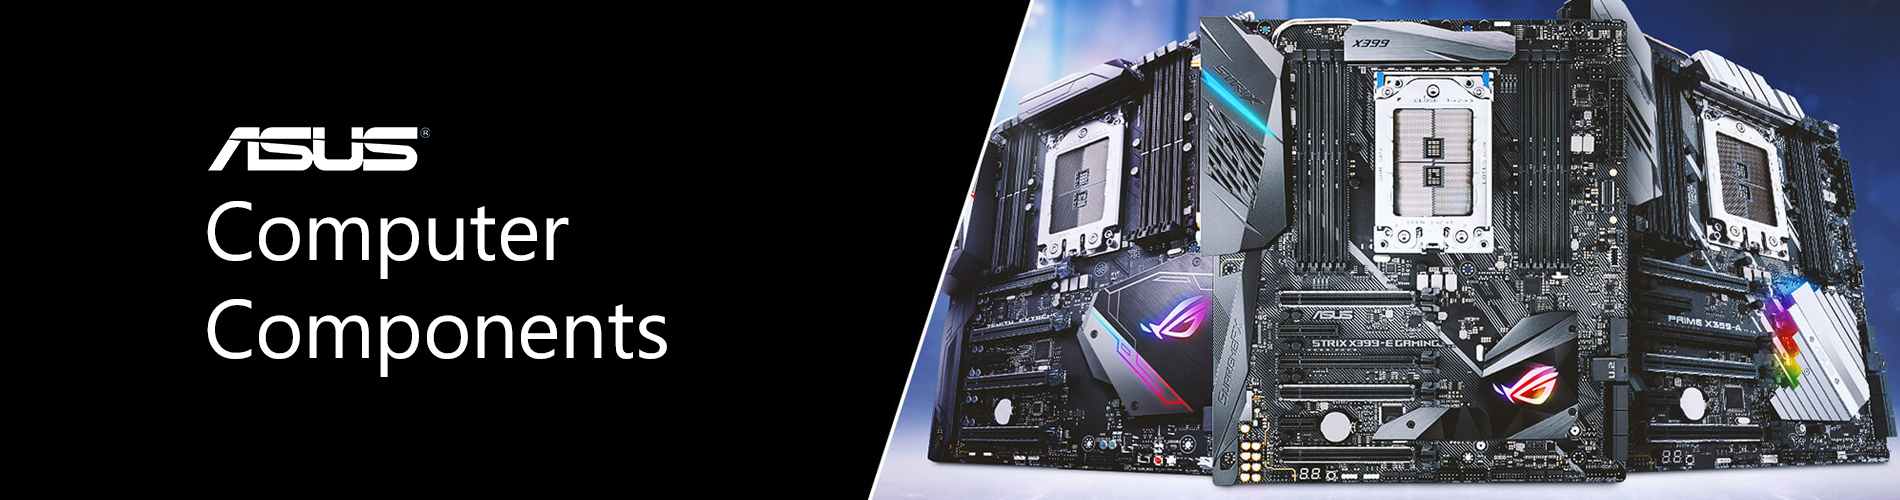 Asus Store Components Top Banner